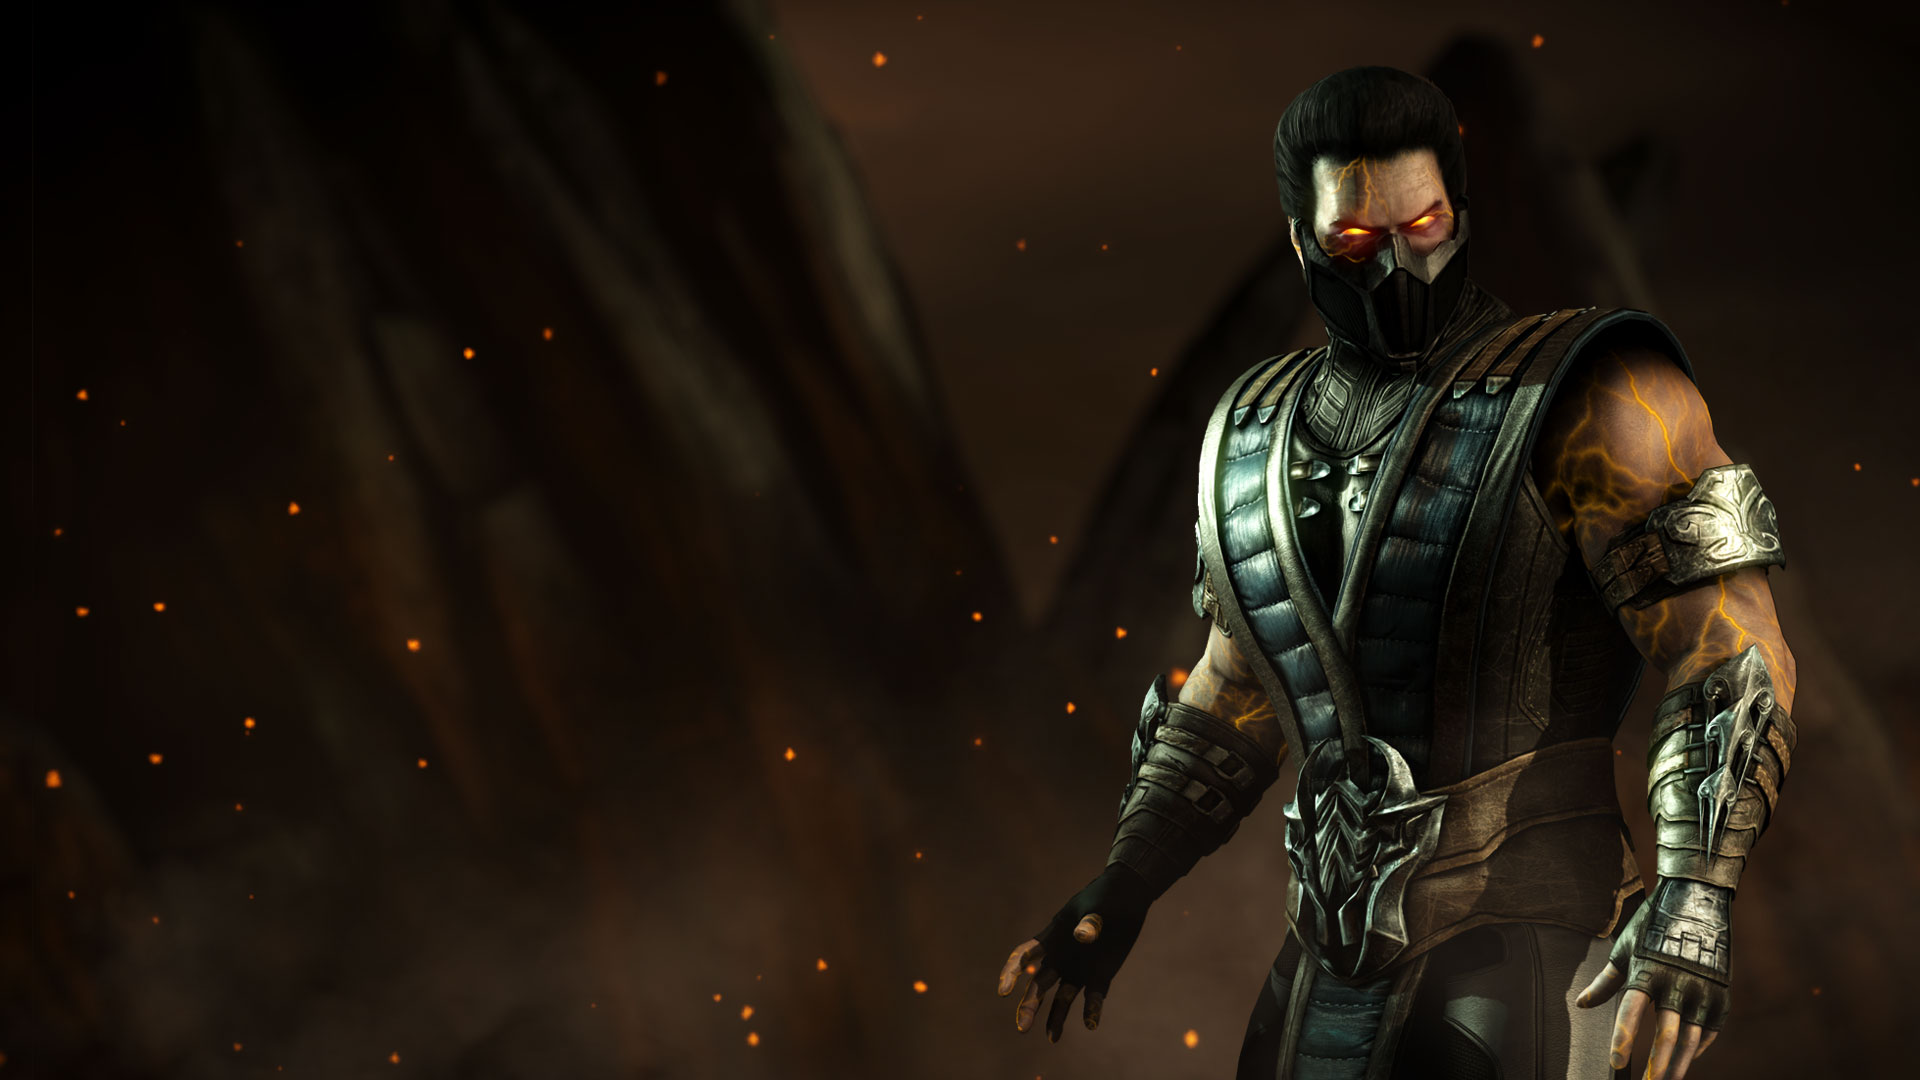 Sub Zero Mortal Kombat X Iphone Wallpaper Mkwarehouse Mortal Kombat X Sub Zero